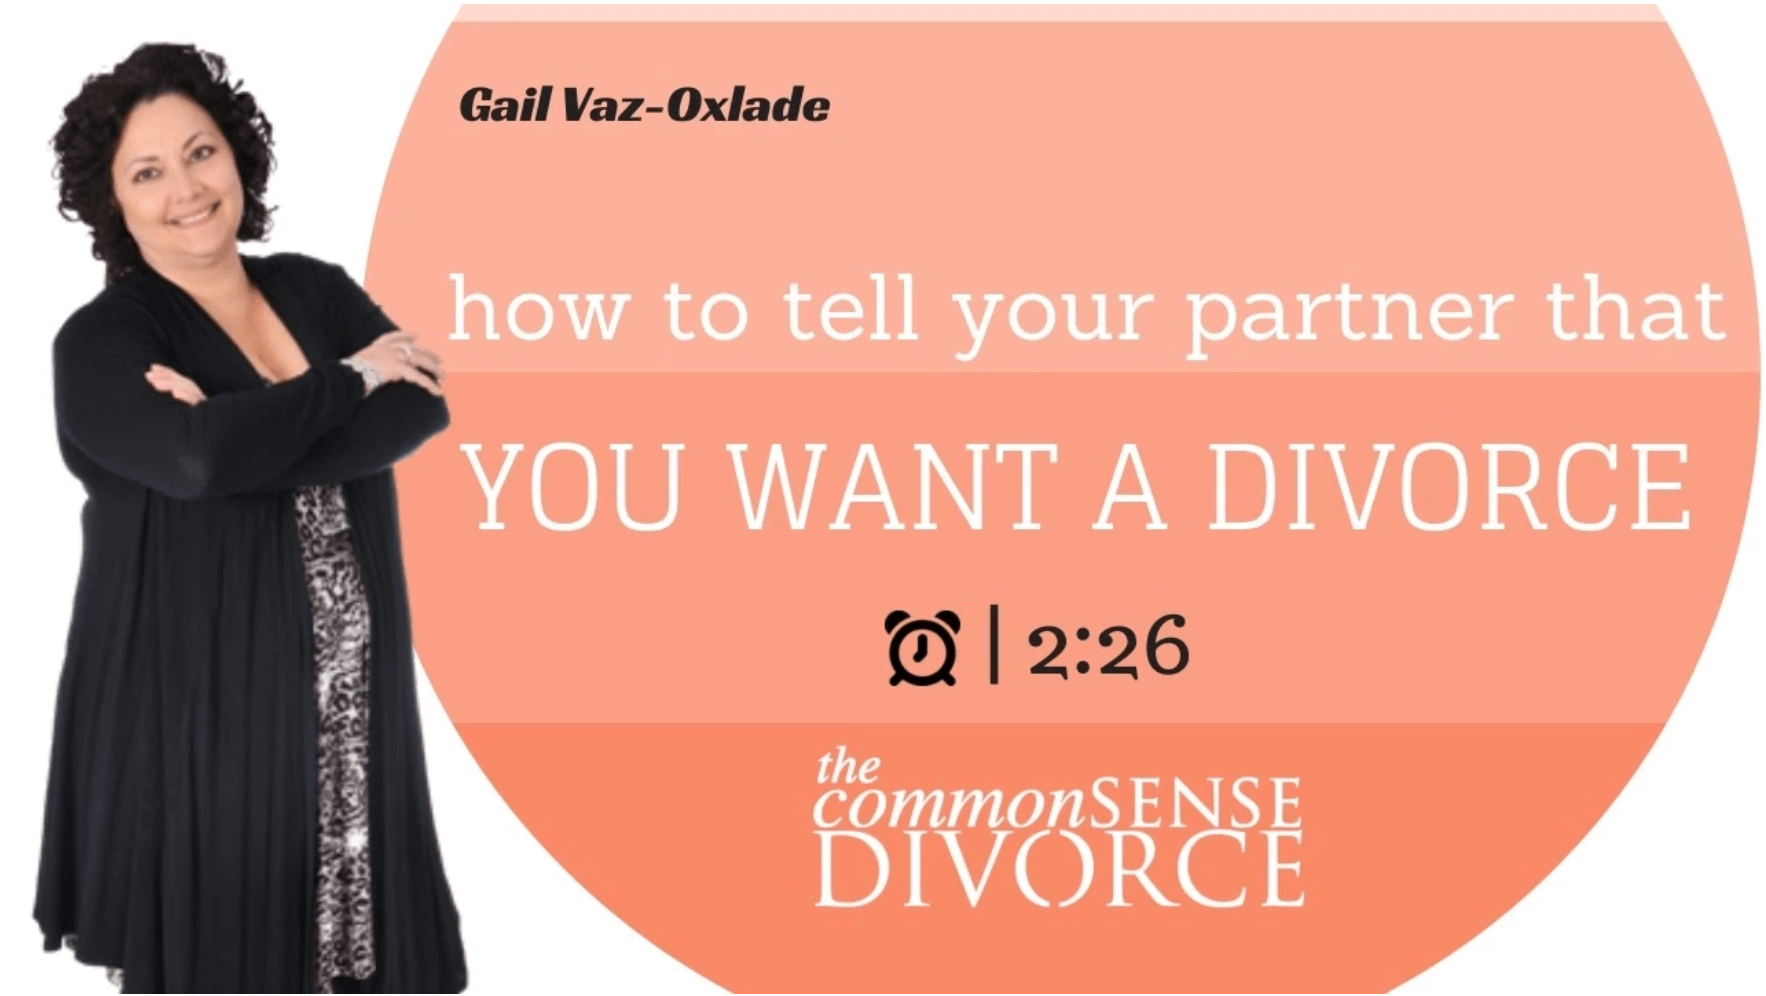 How to Tell Your Partner that You Want a Divorce 9